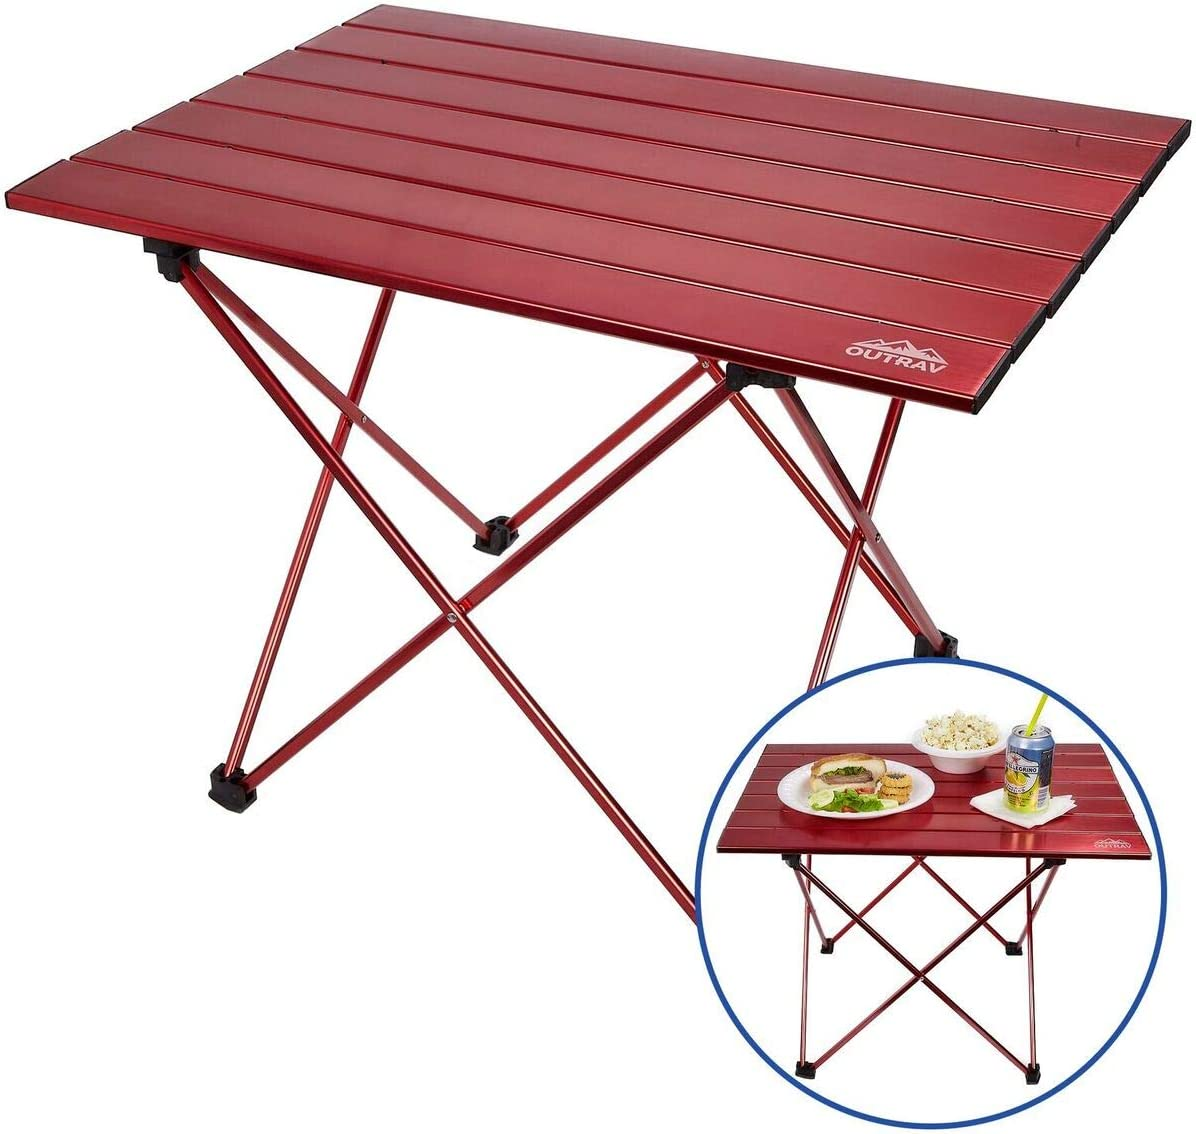 Portable Picnic and Camping Table Collapsible Accordion Aluminum Frame, Roll Up Aluminum Table Top – Drawstring Carrying Case Ultra Lightweight – by Outrav